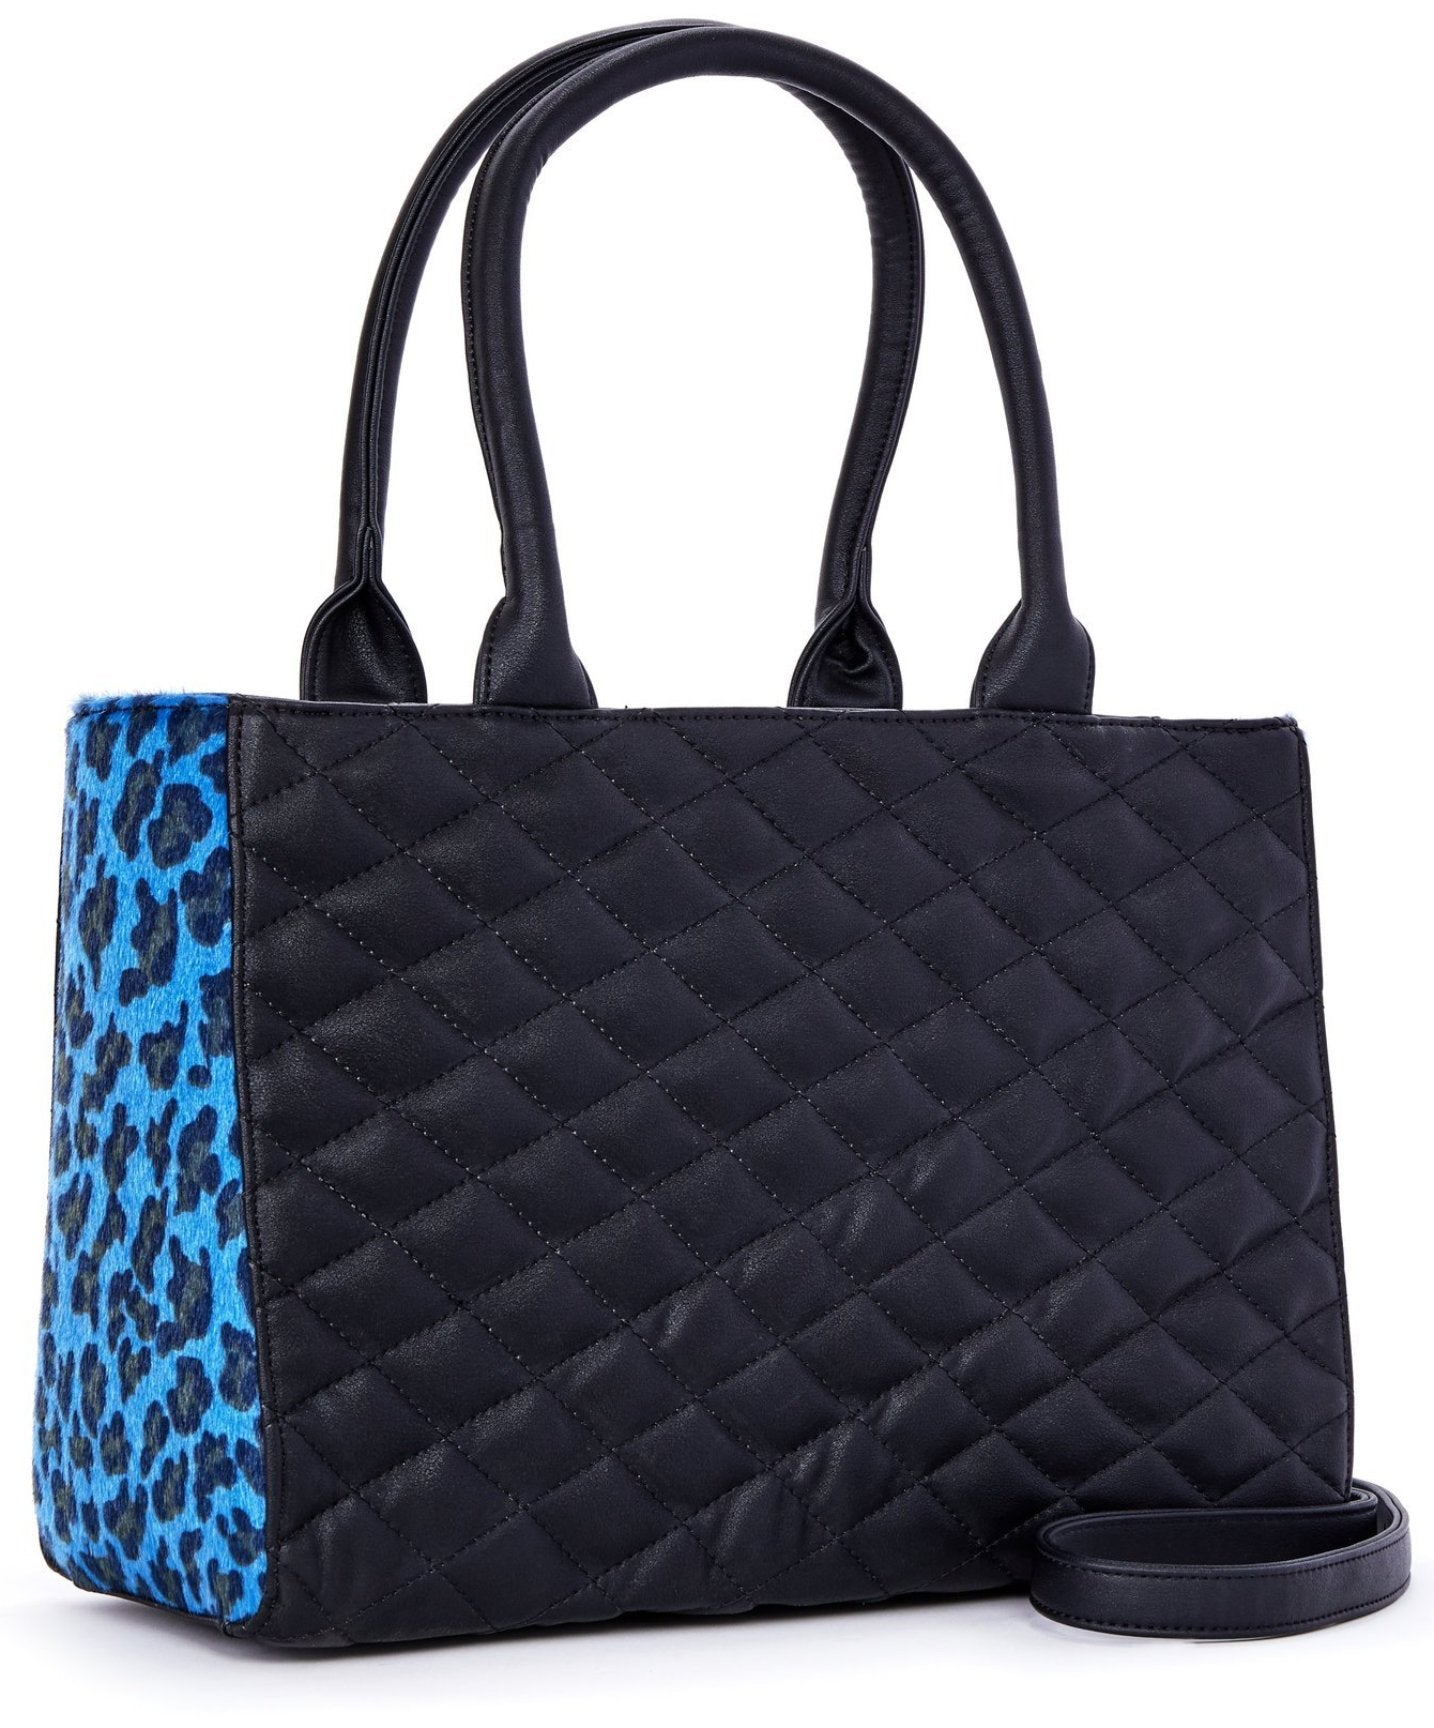 The SWEET PEA Tote - BLACK/BLUE LEOPARD